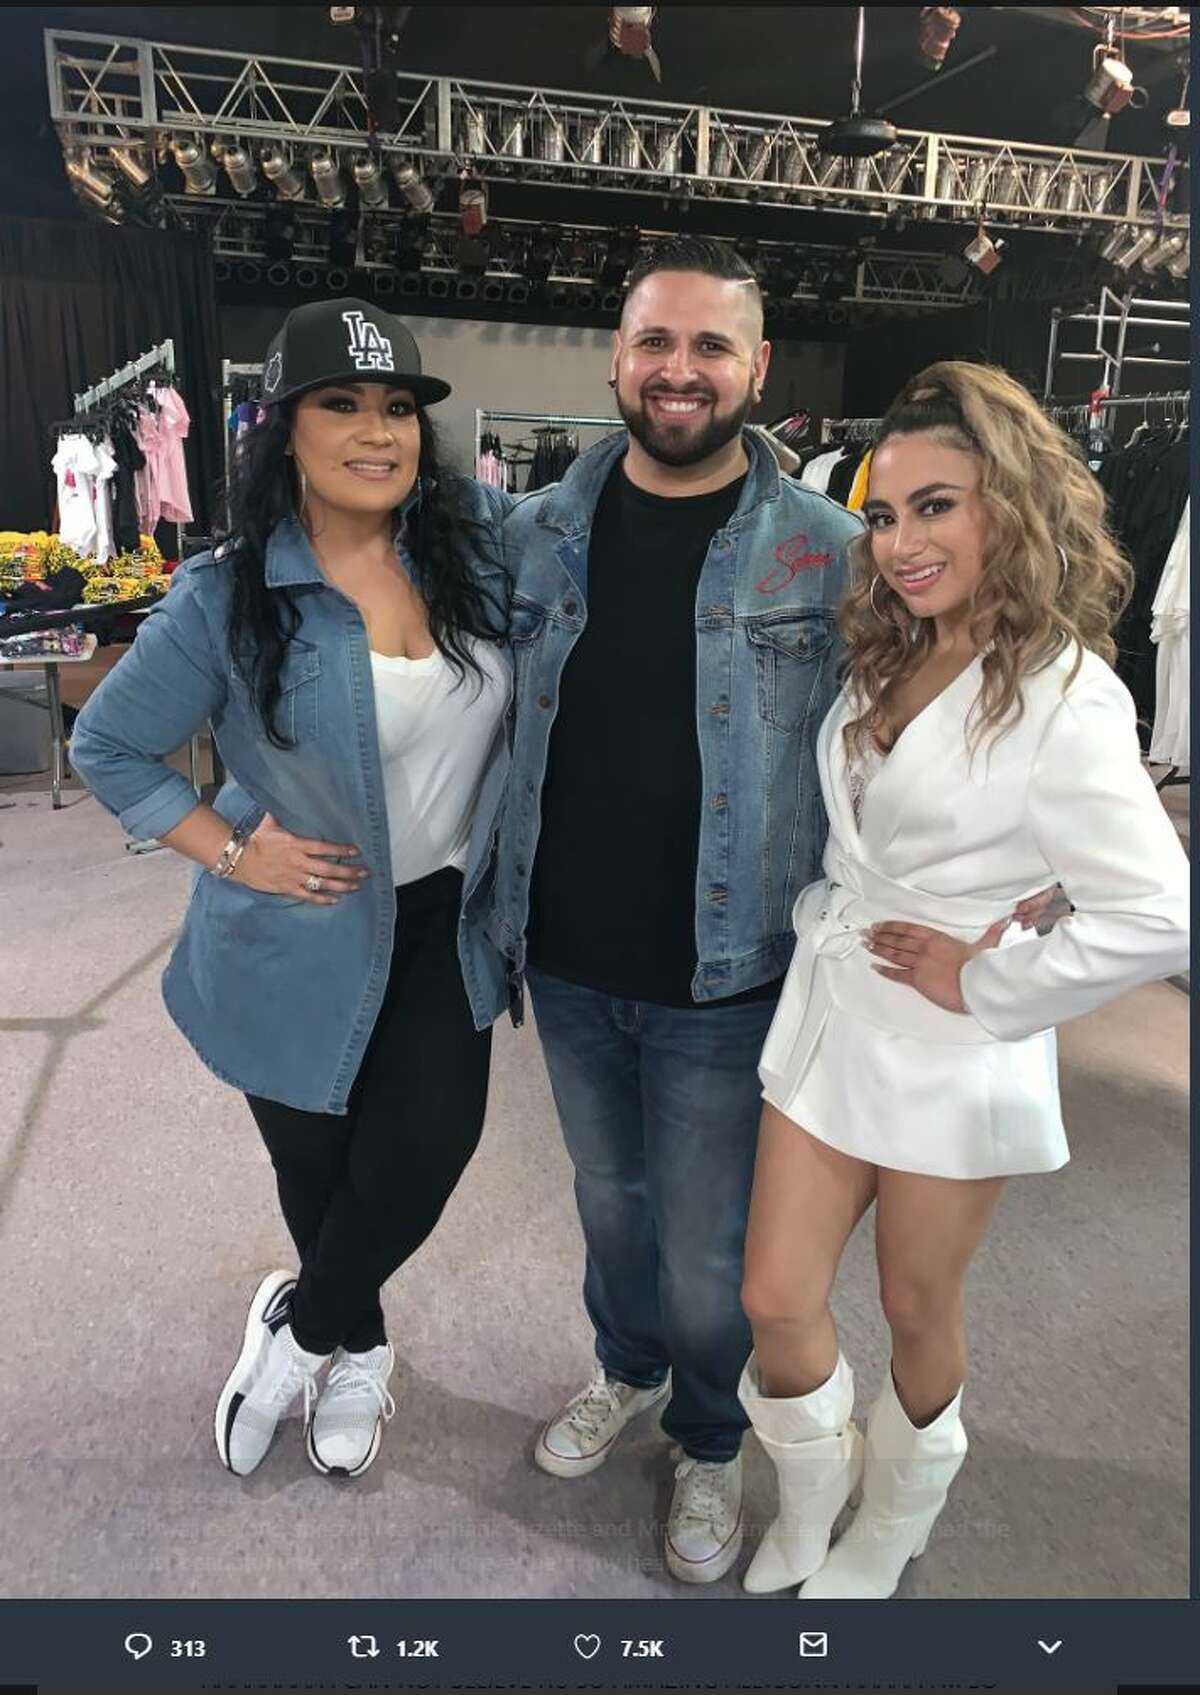 San Antonio pop star Ally Brooke gushed about her meeting with Selena Quintanilla-Perez's family on the 25th anniversary of the Amor Prohibido album's premiere.